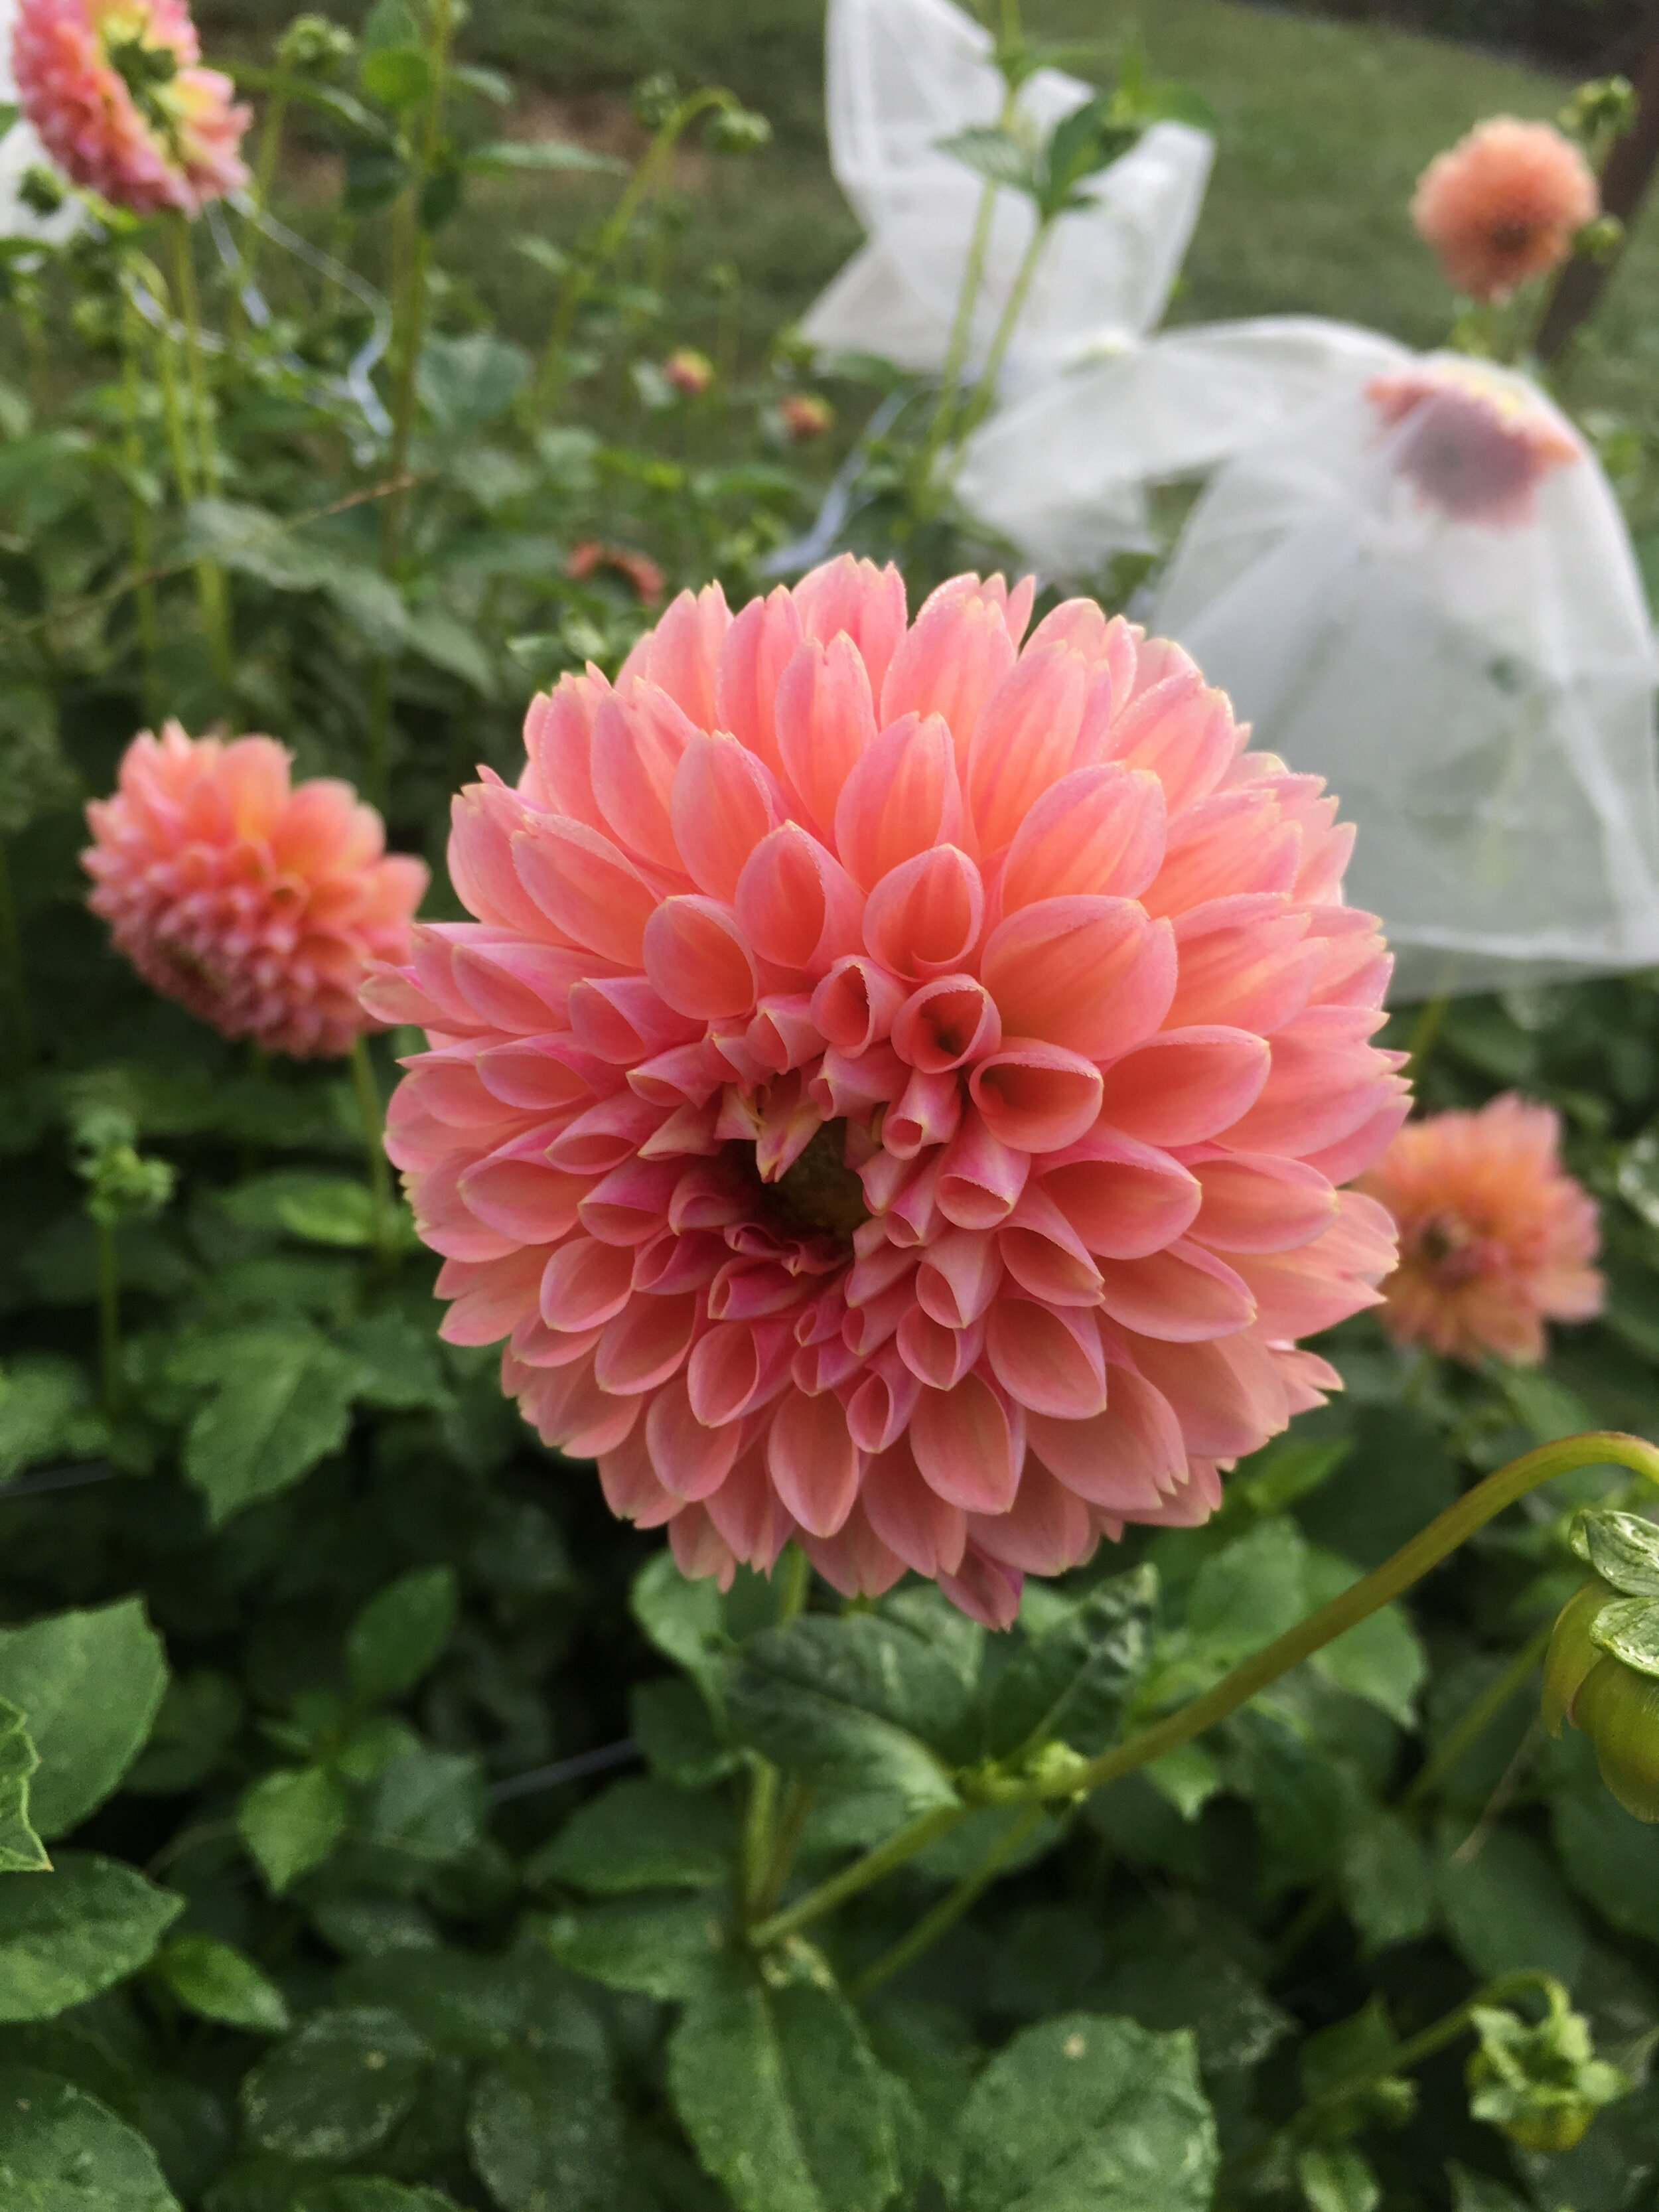 We'll have lots of dahlias at market this week- they're truly special!